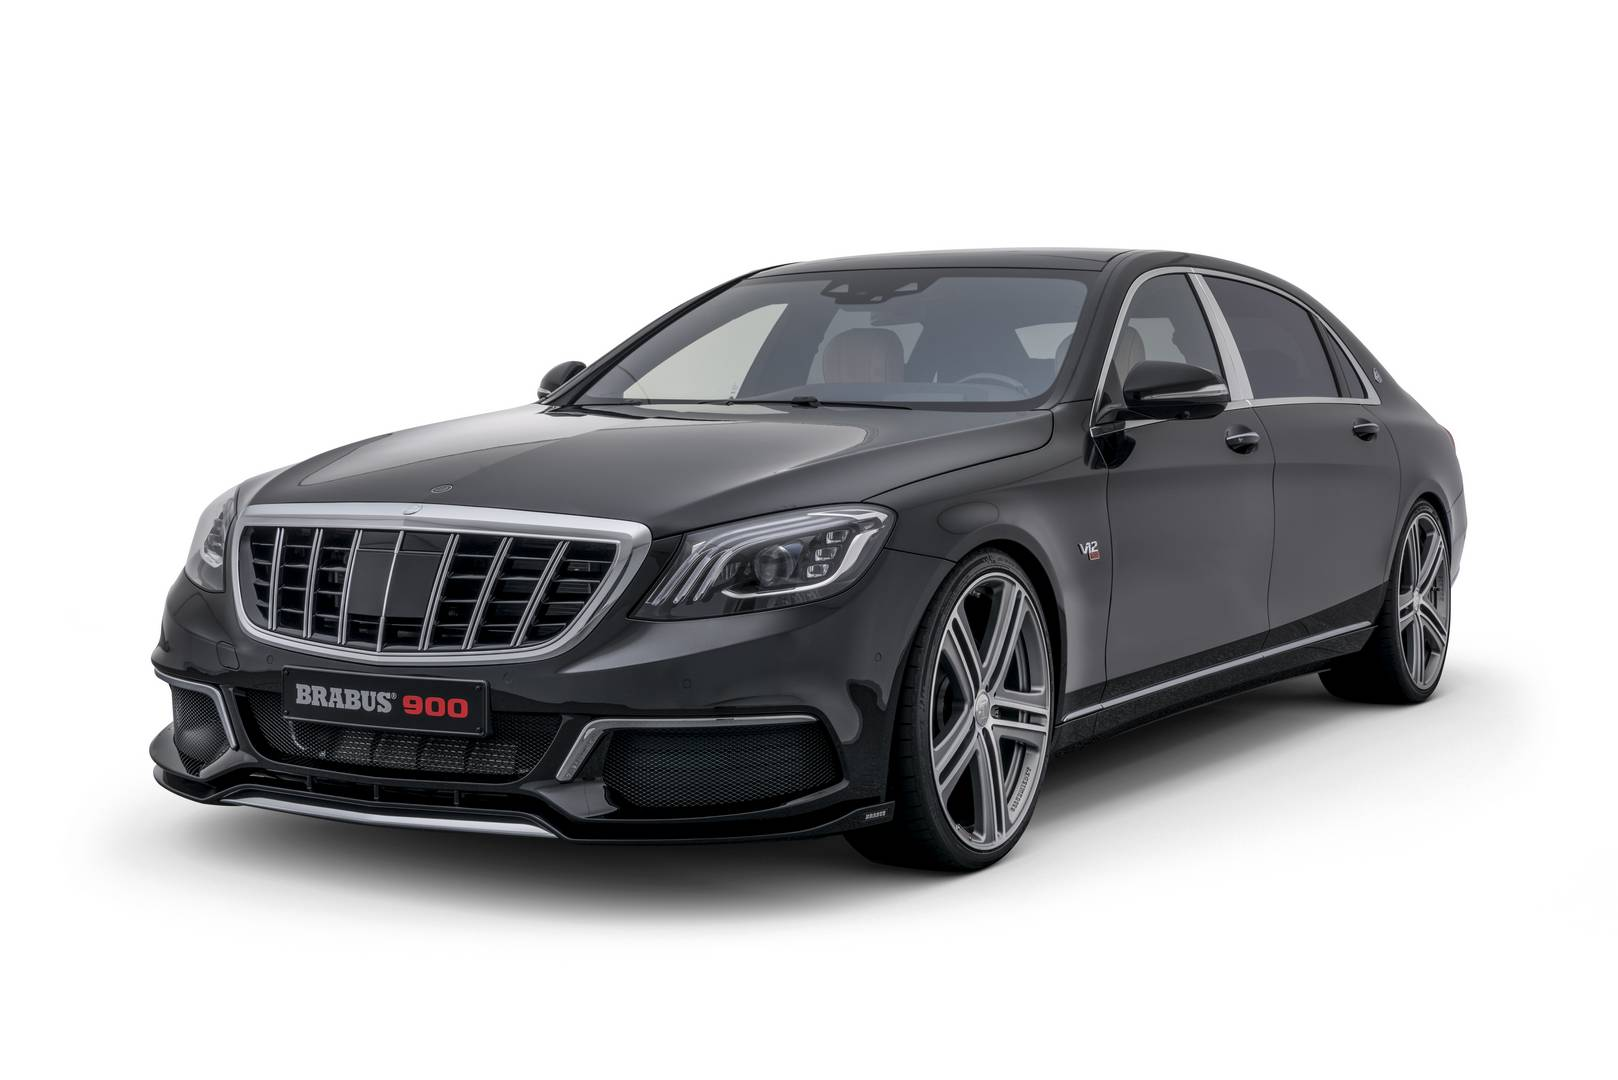 Brabus Rocket 900 Based on Mercedes-Maybach S650